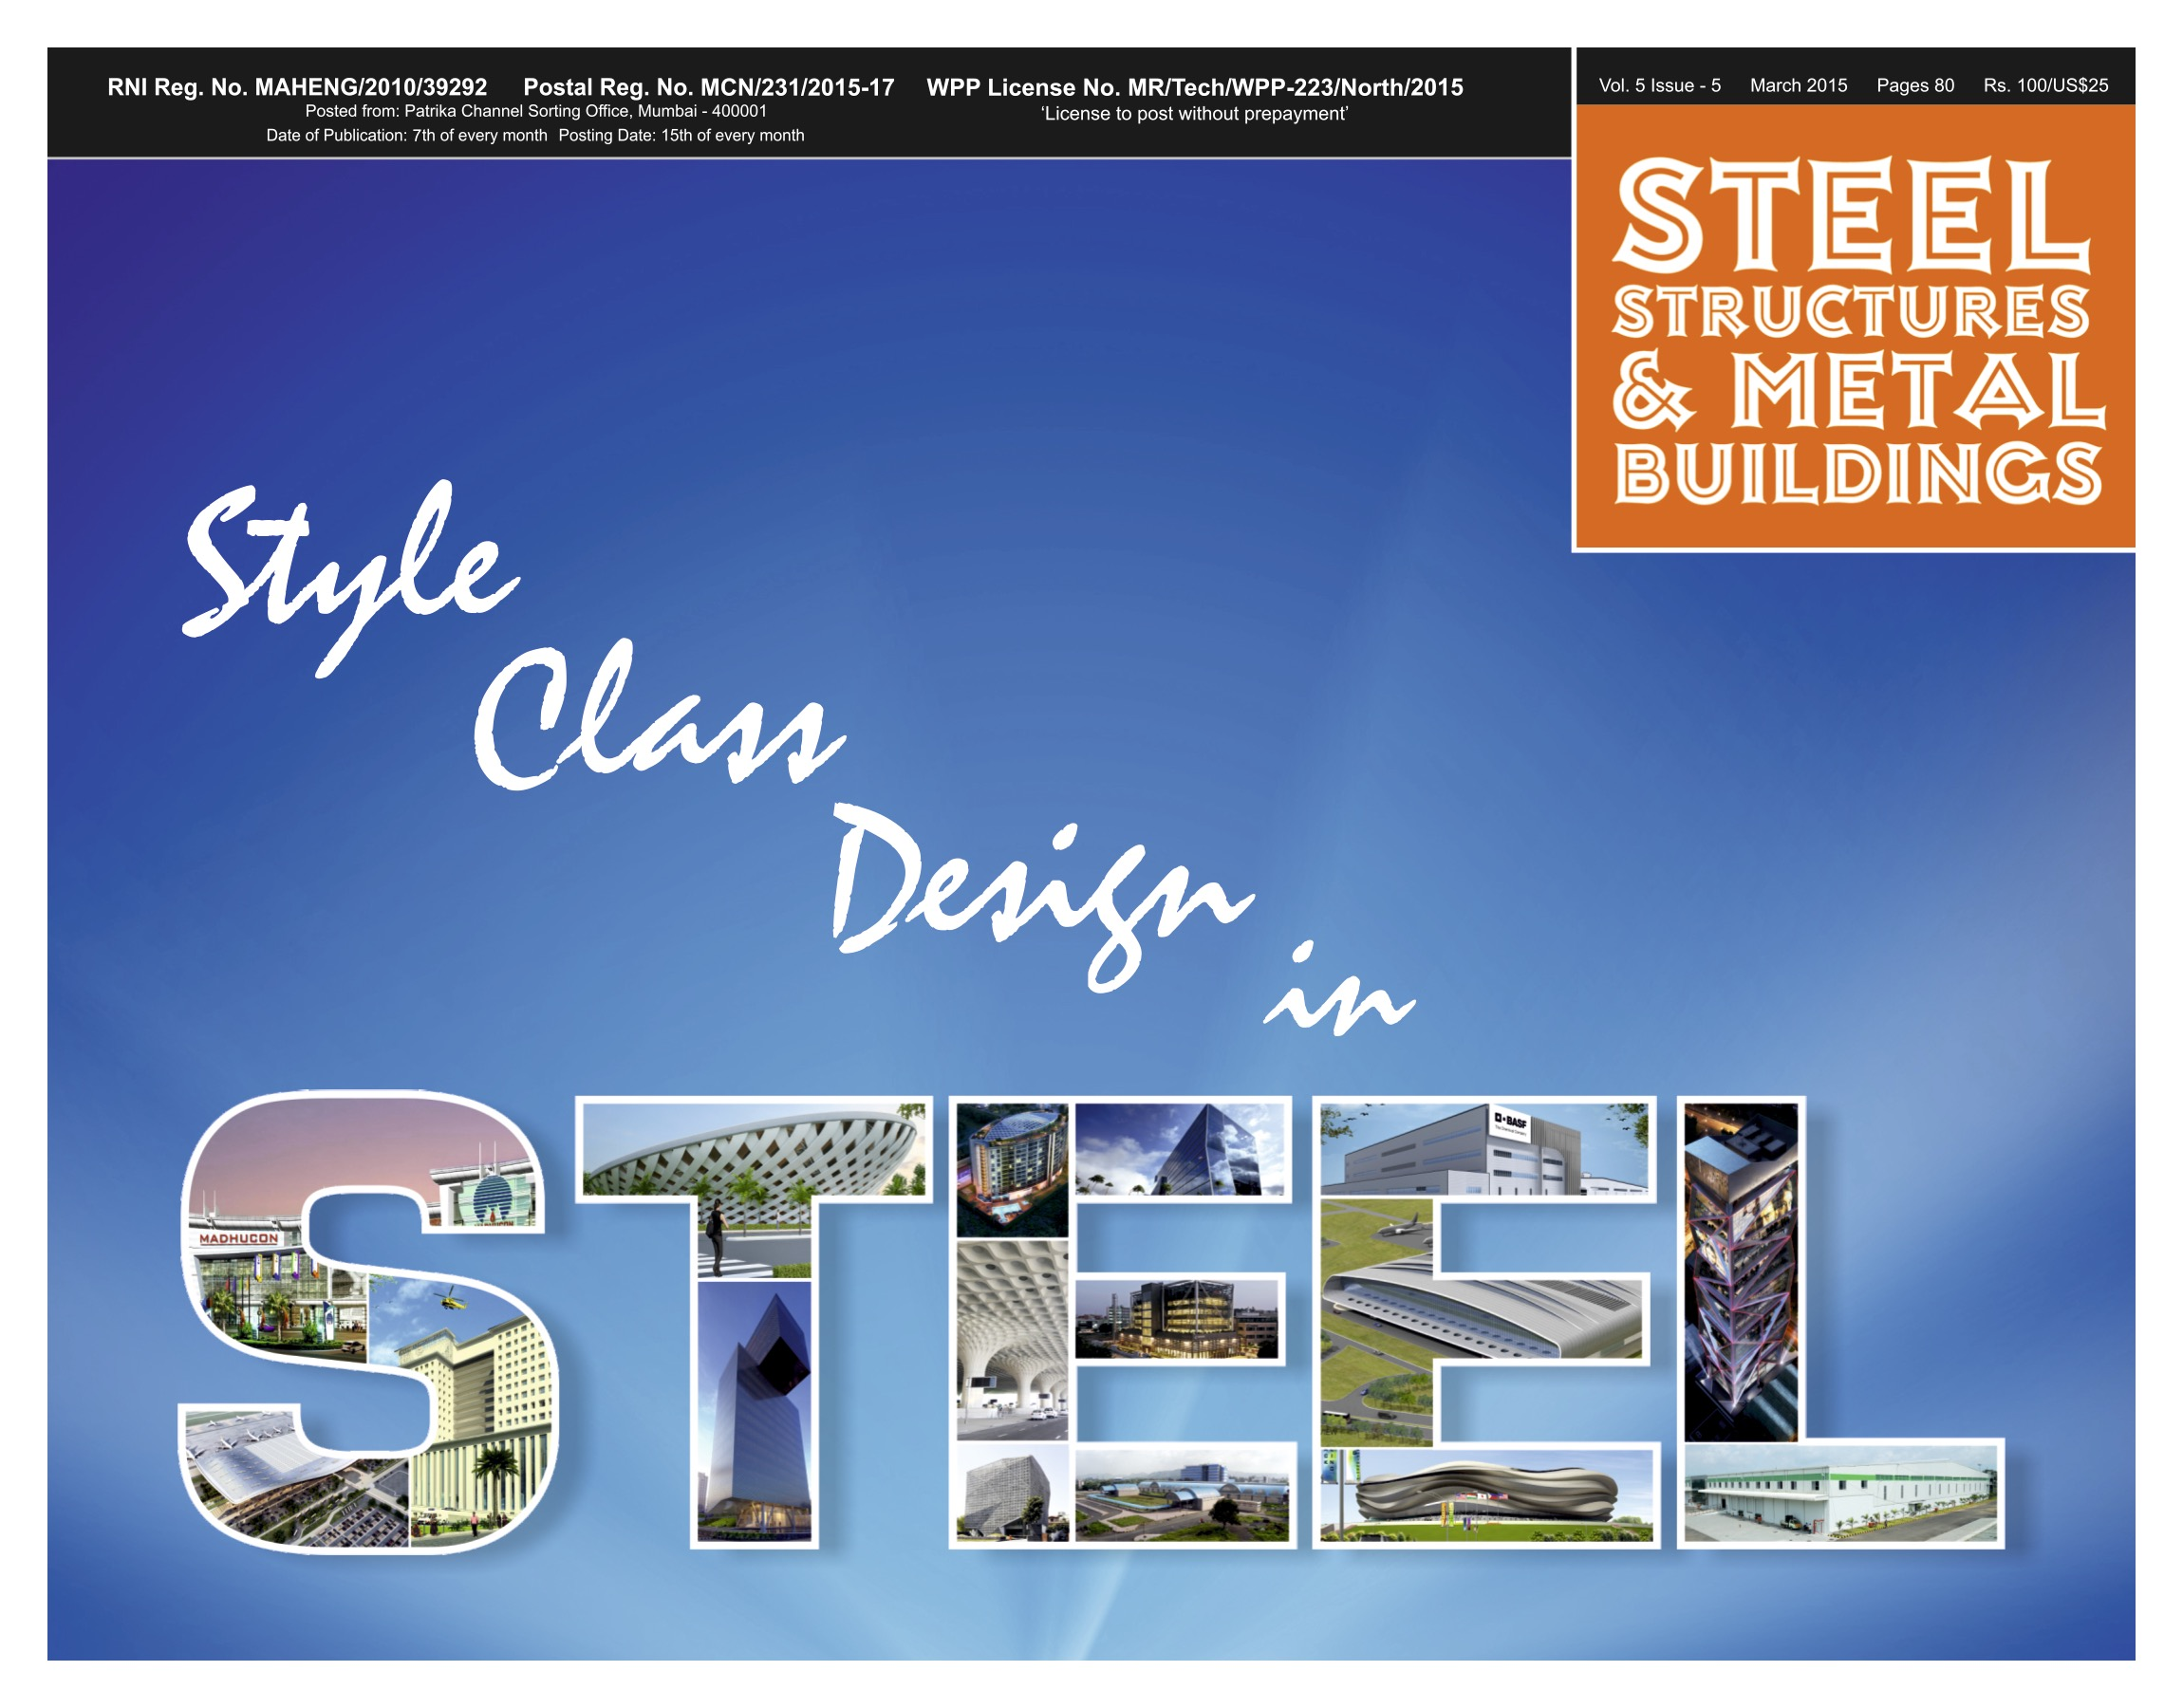 Steel Structures and Metal Buildings - OBO Bettermann